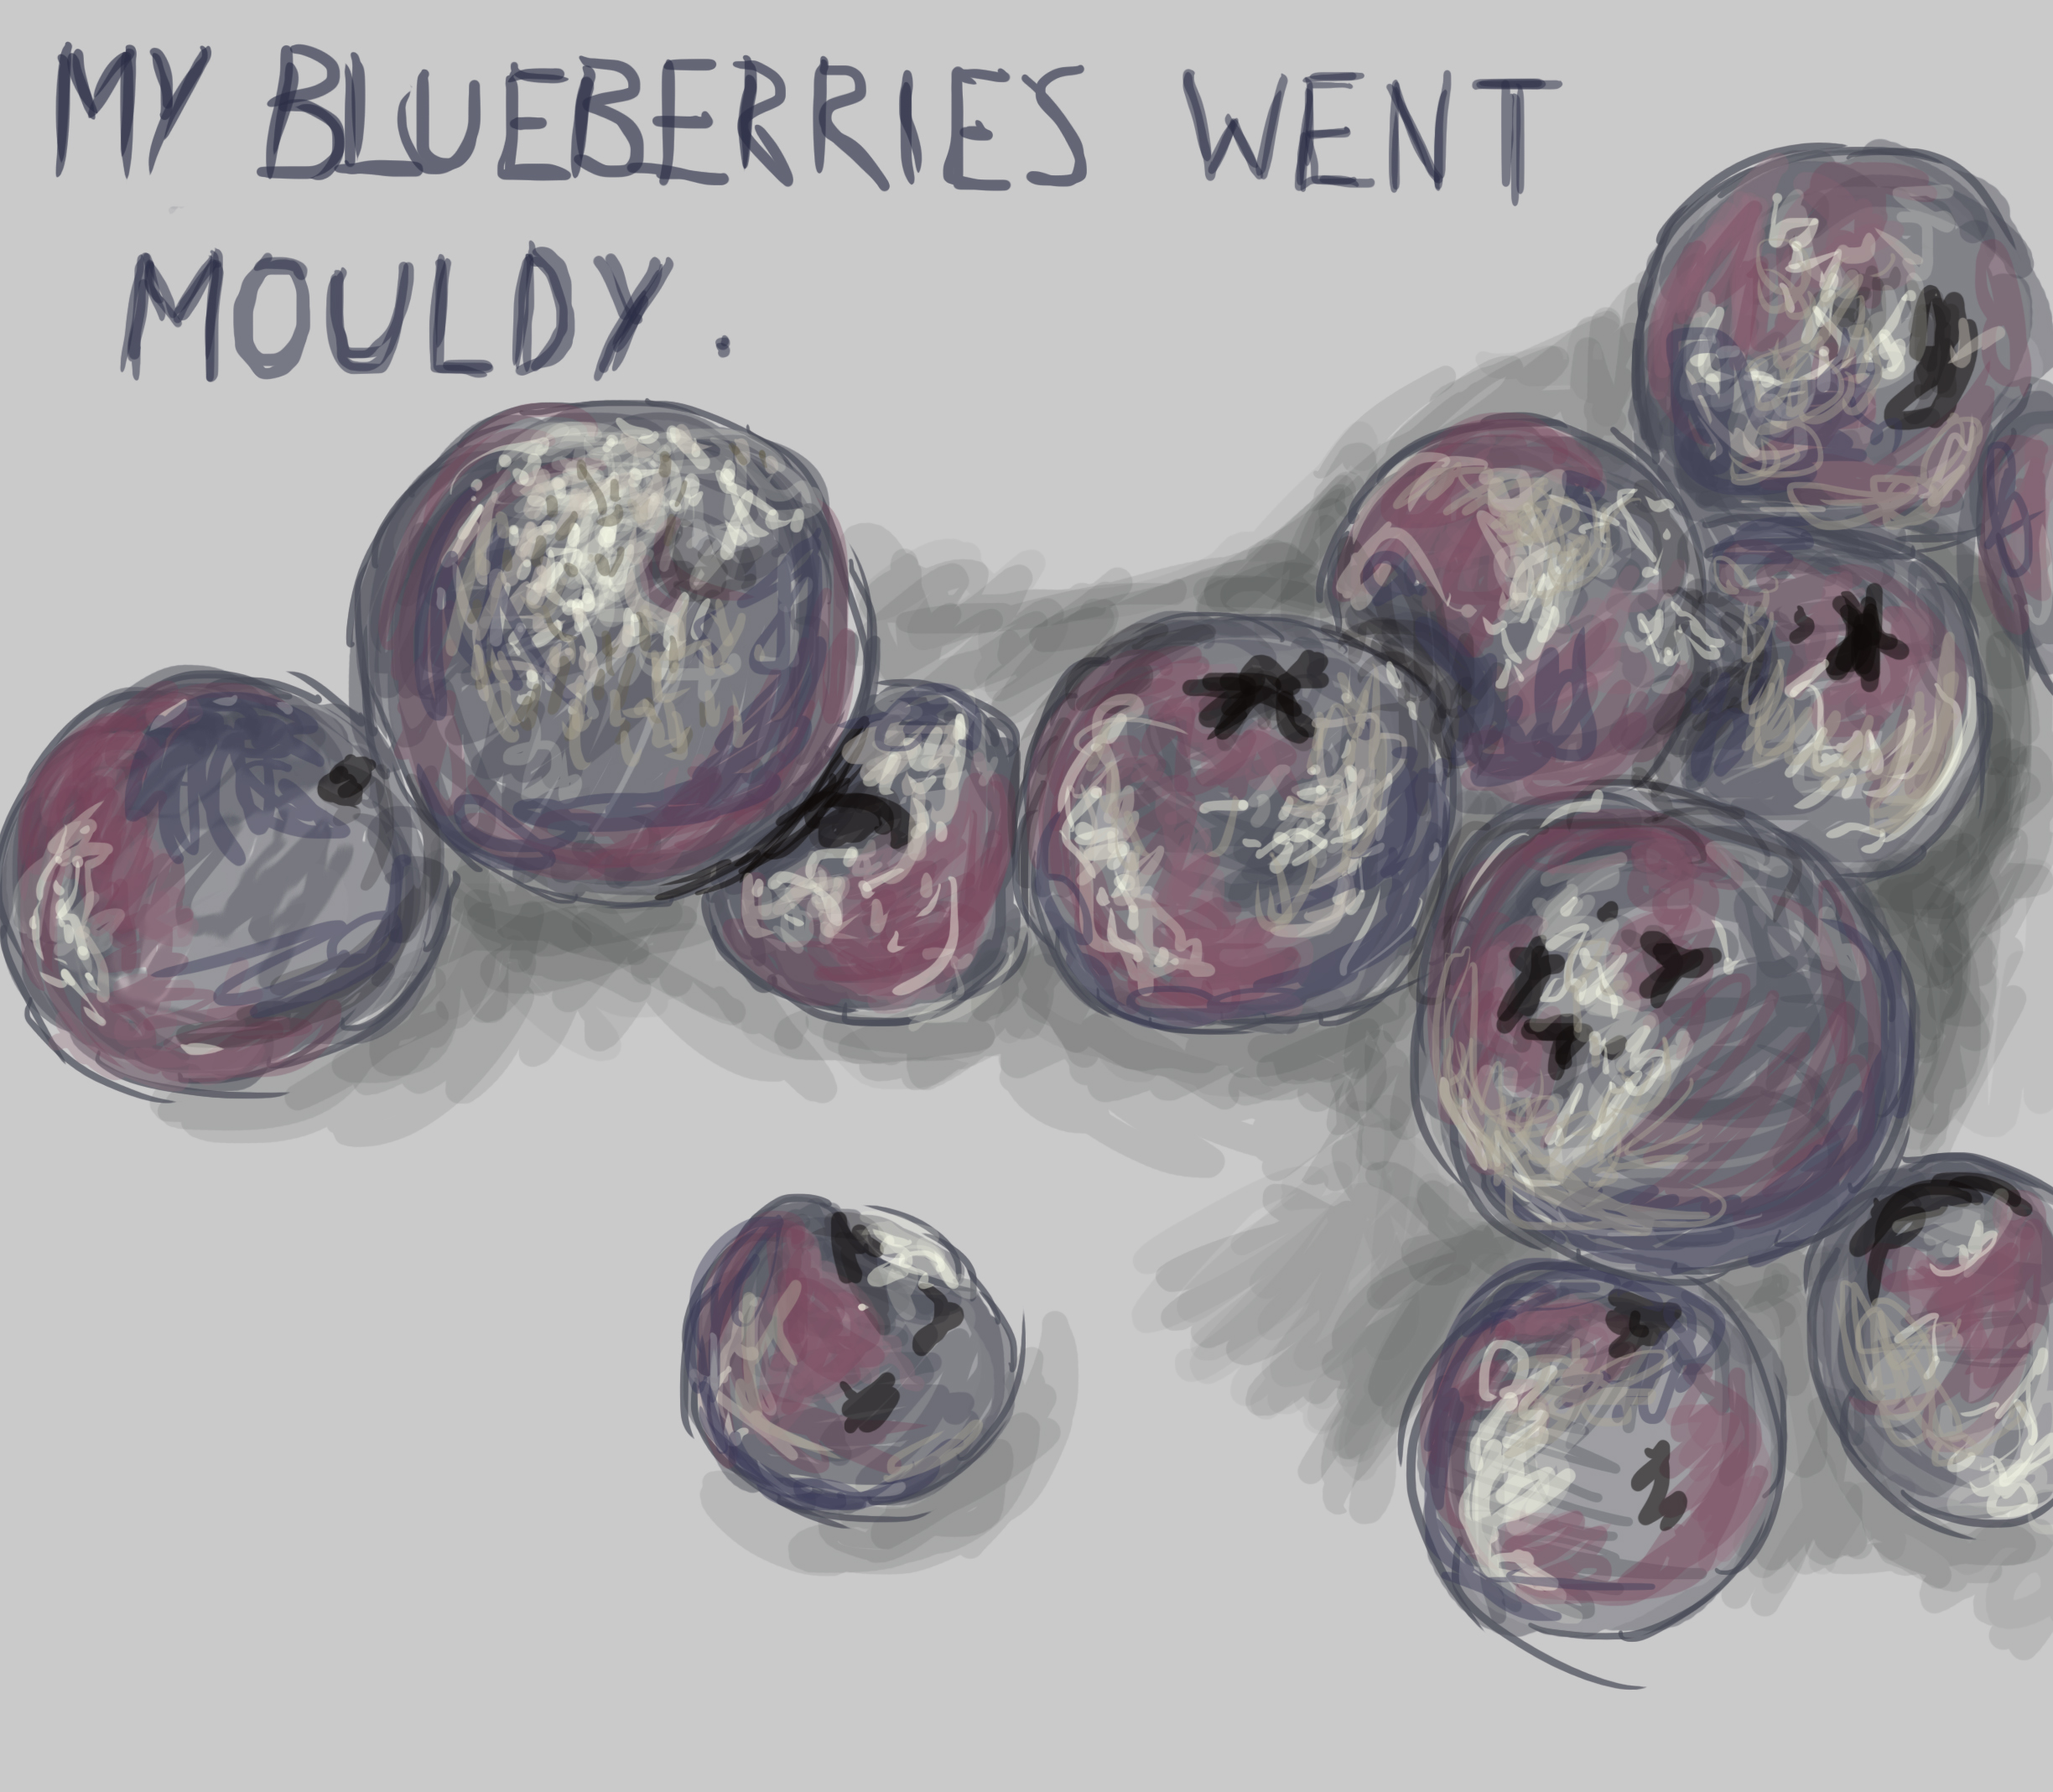 mouldy blueberries